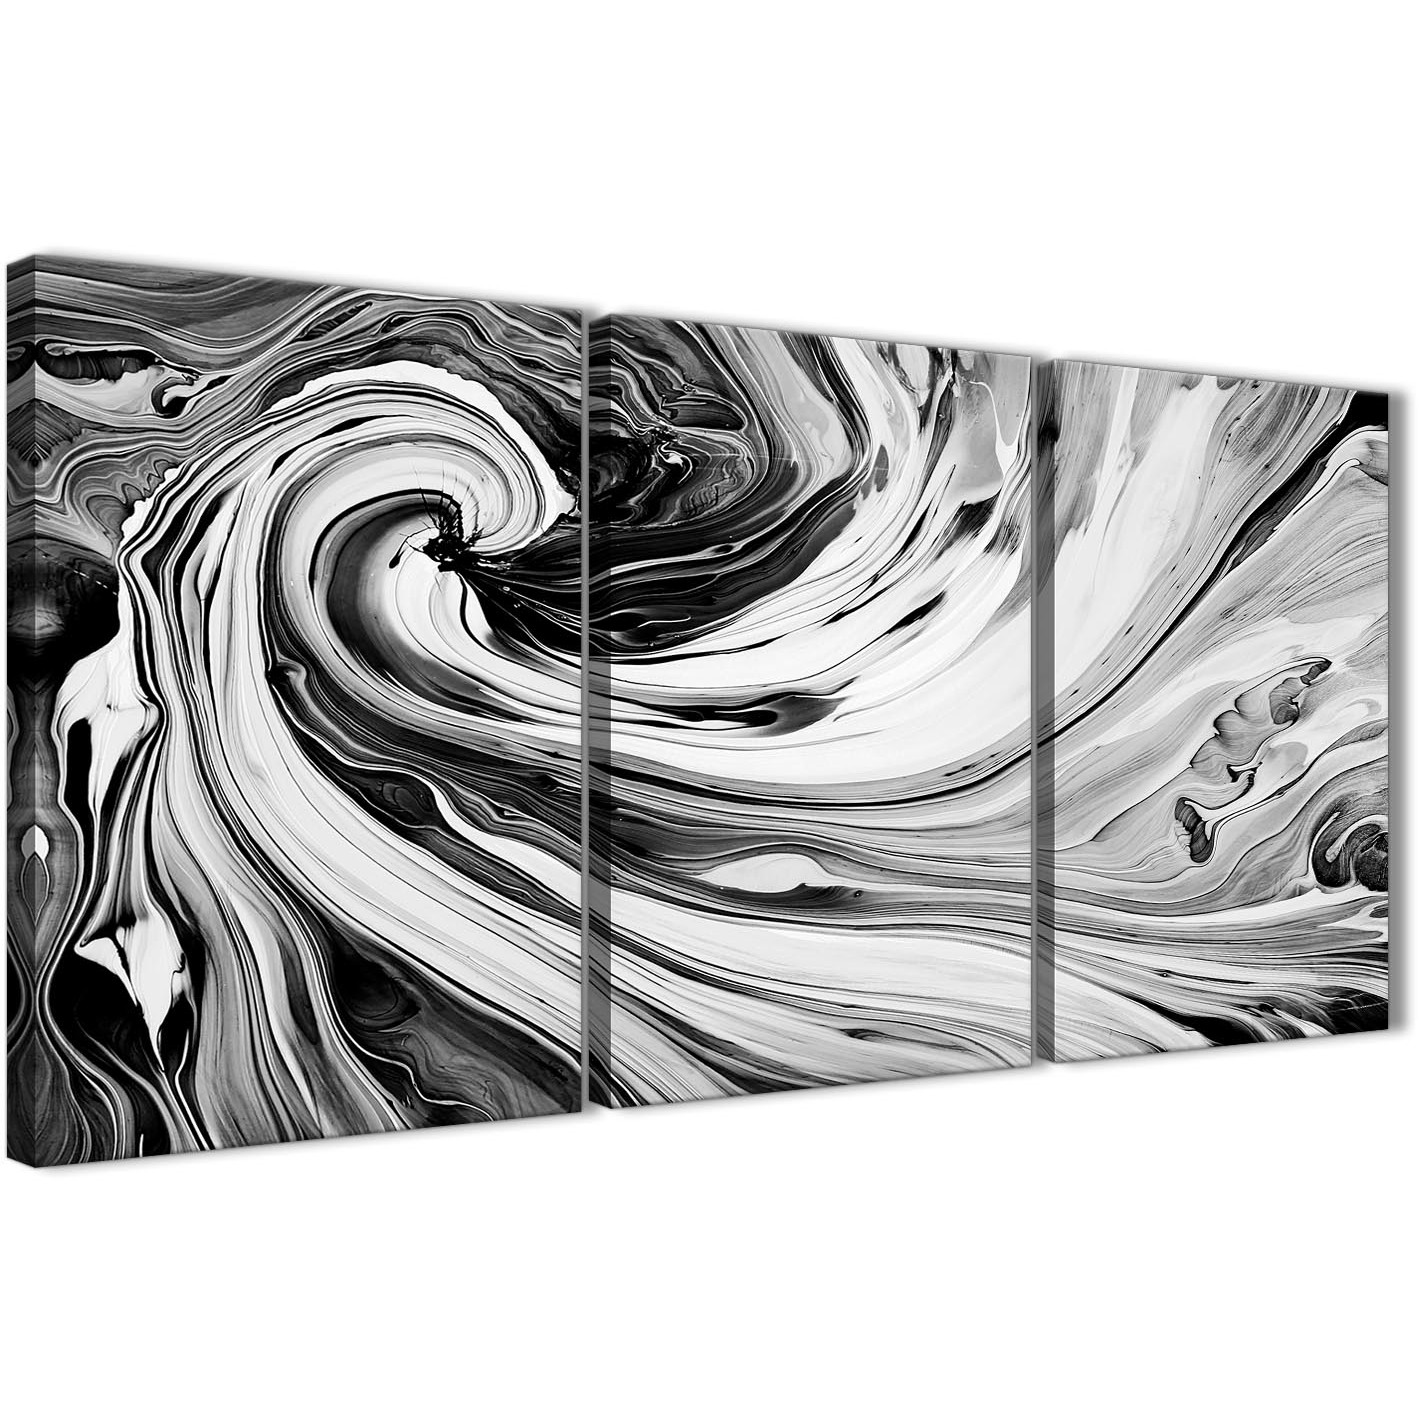 Oversized black white grey swirls modern abstract canvas wall art split 3 part 125cm wide 3354 display gallery item 1